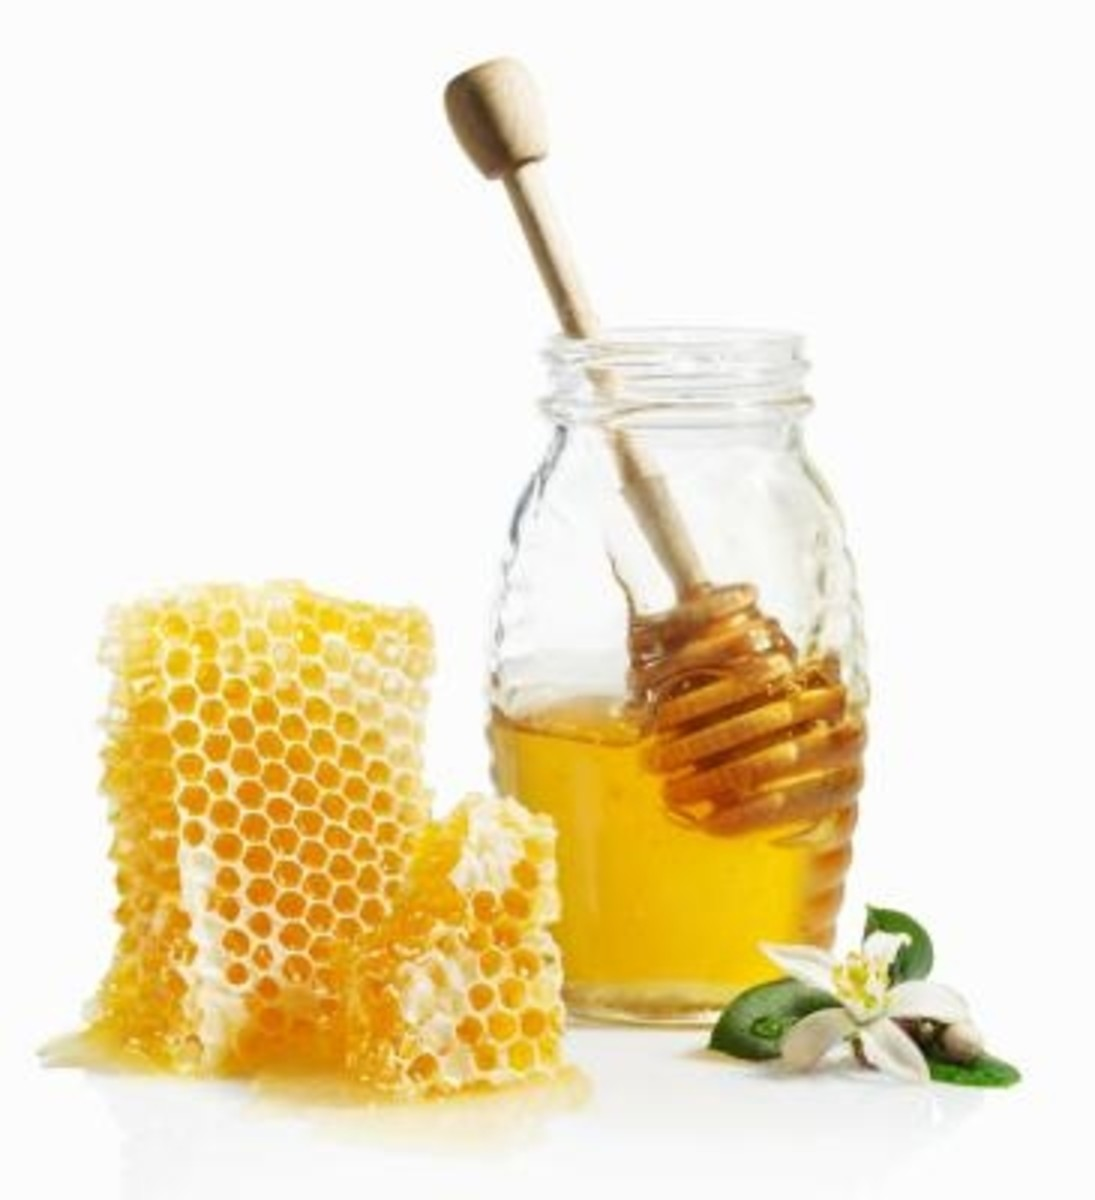 Raw local honey contains pollen that can help your body desensitized to allergens.